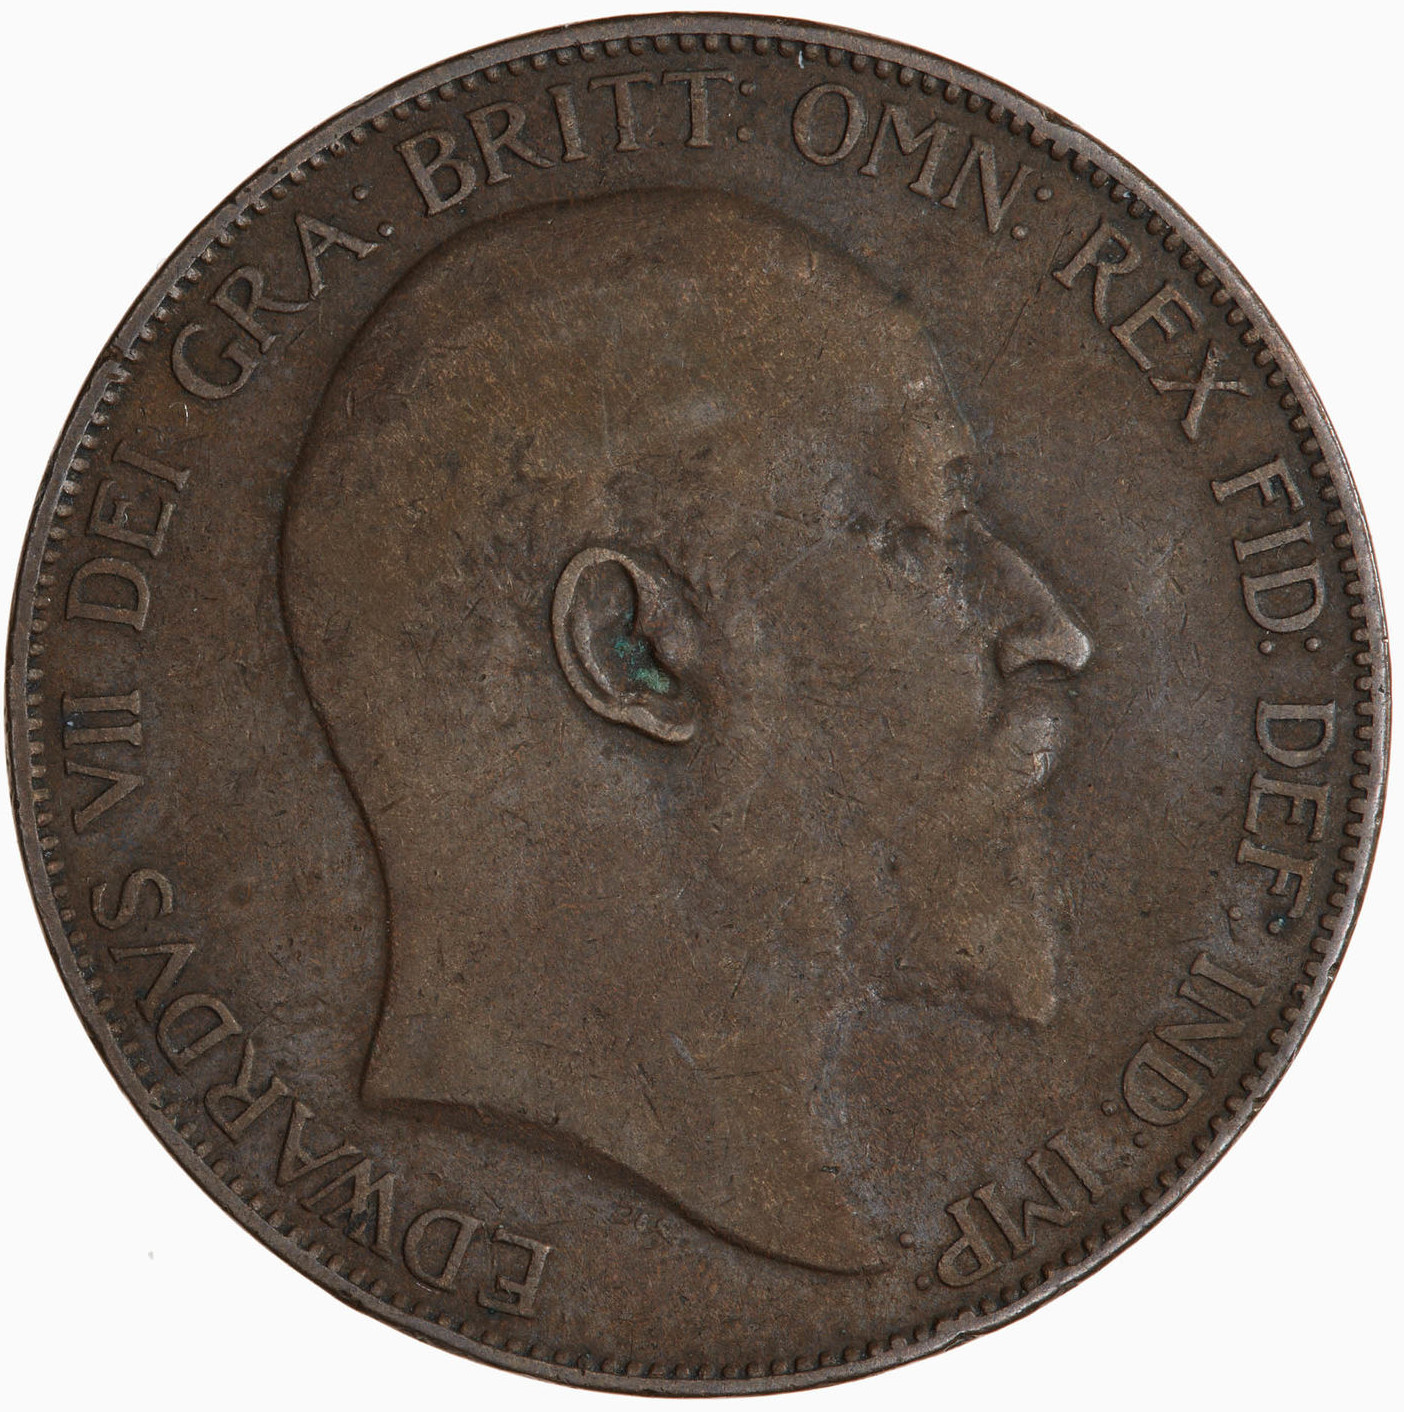 Penny 1905: Photo Coin - Penny, Edward VII, Great Britain, 1905